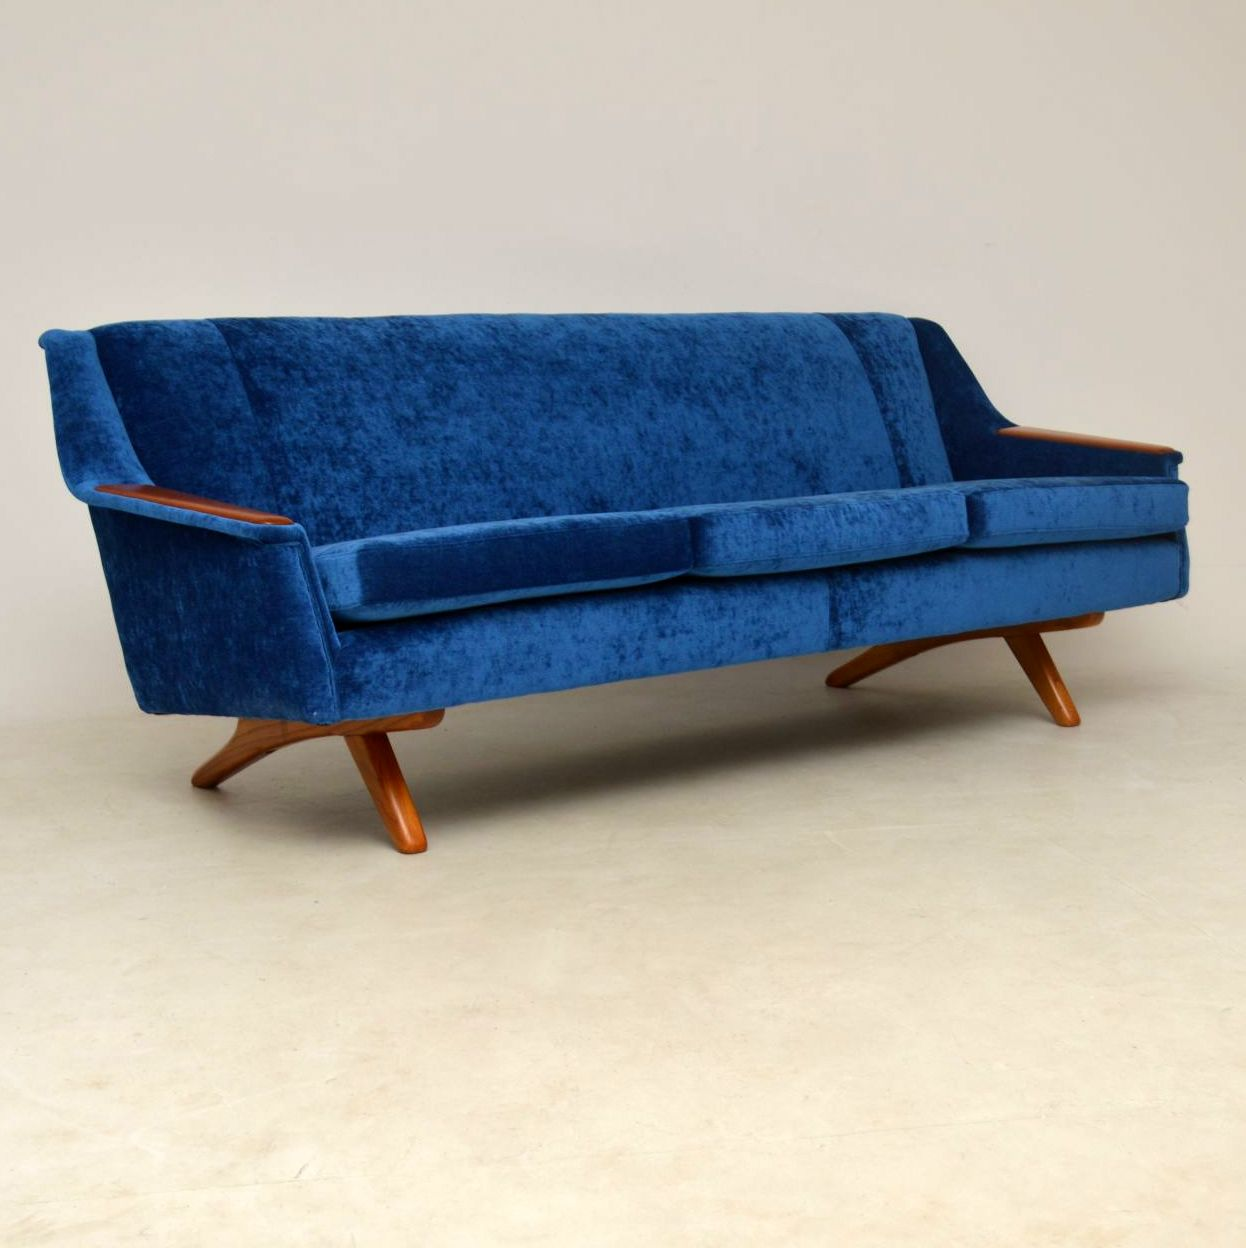 Genial 1960u0027s Vintage Sofa By Illum Wikkelso For Westnofa